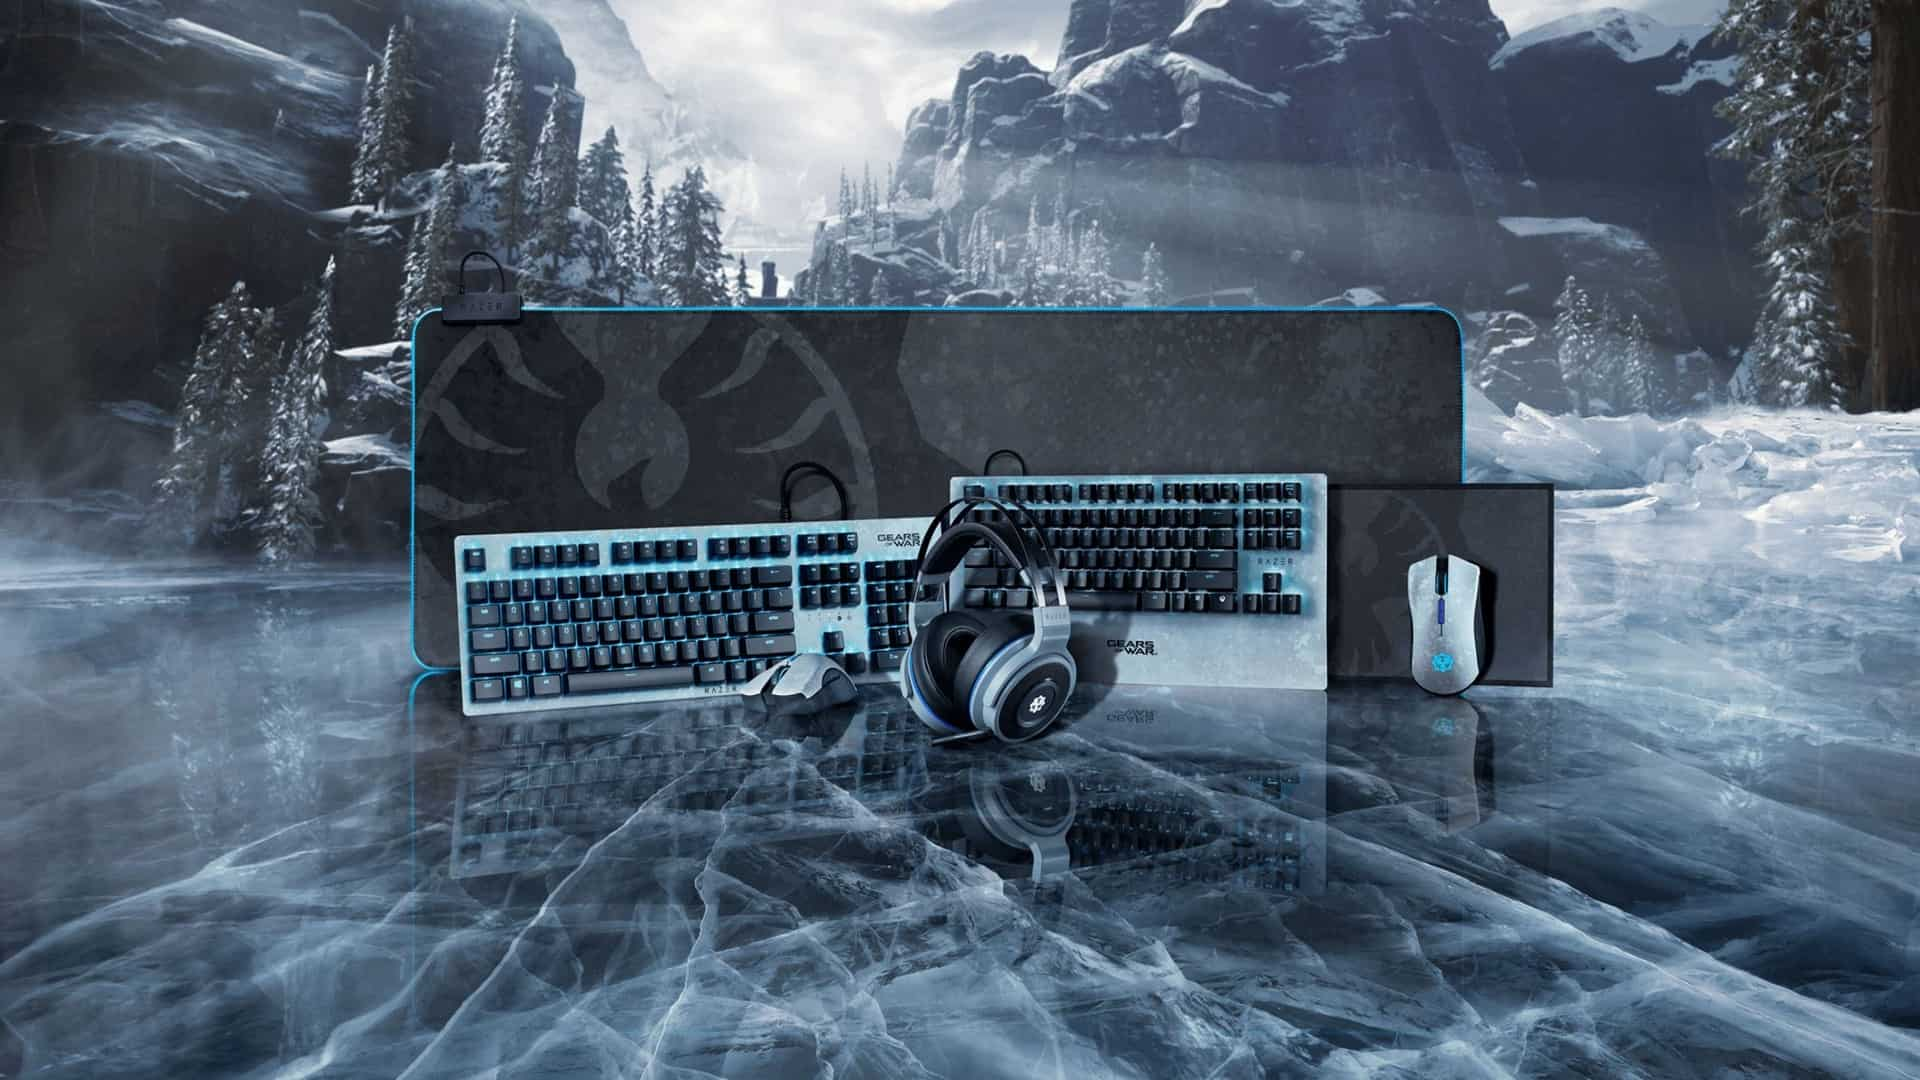 Gear Up For Gears 5 With Razer's Special Edition Peripherals